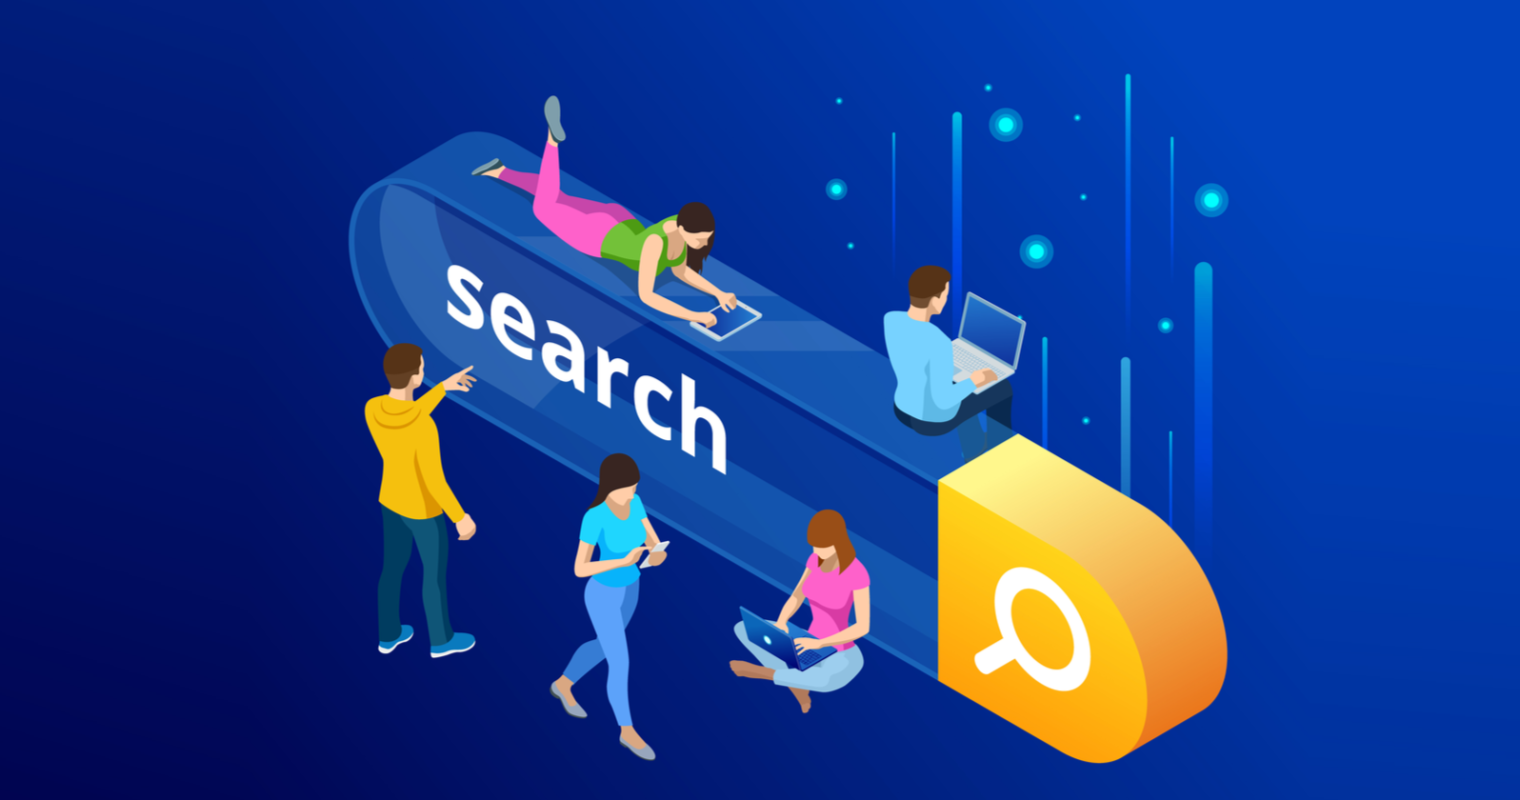 https://res.cloudinary.com/dpyy9uysx/image/upload/v1559884120/seo/site-search-keyword-suggestion-driven-by-success-data.png